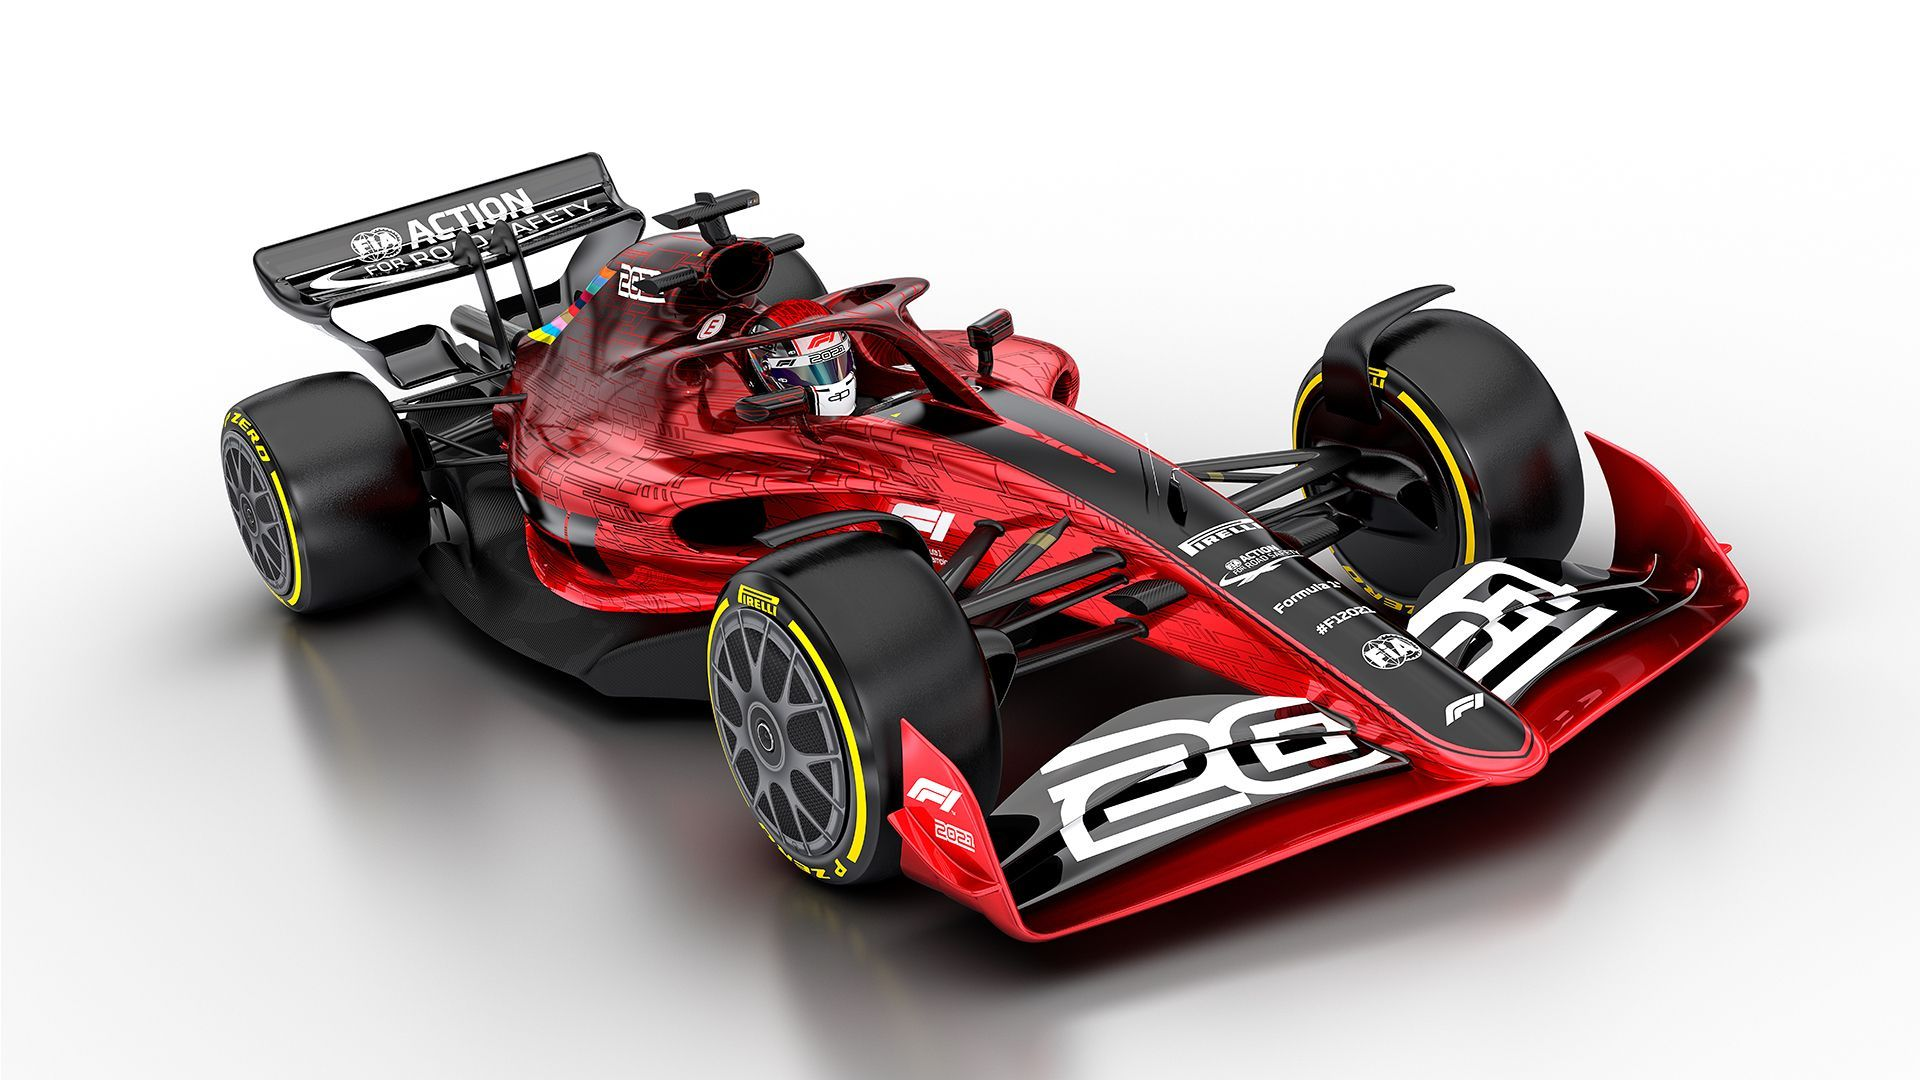 F1 2020 Wallpapers   Top F1 2020 Backgrounds   WallpaperAccess 1920x1080